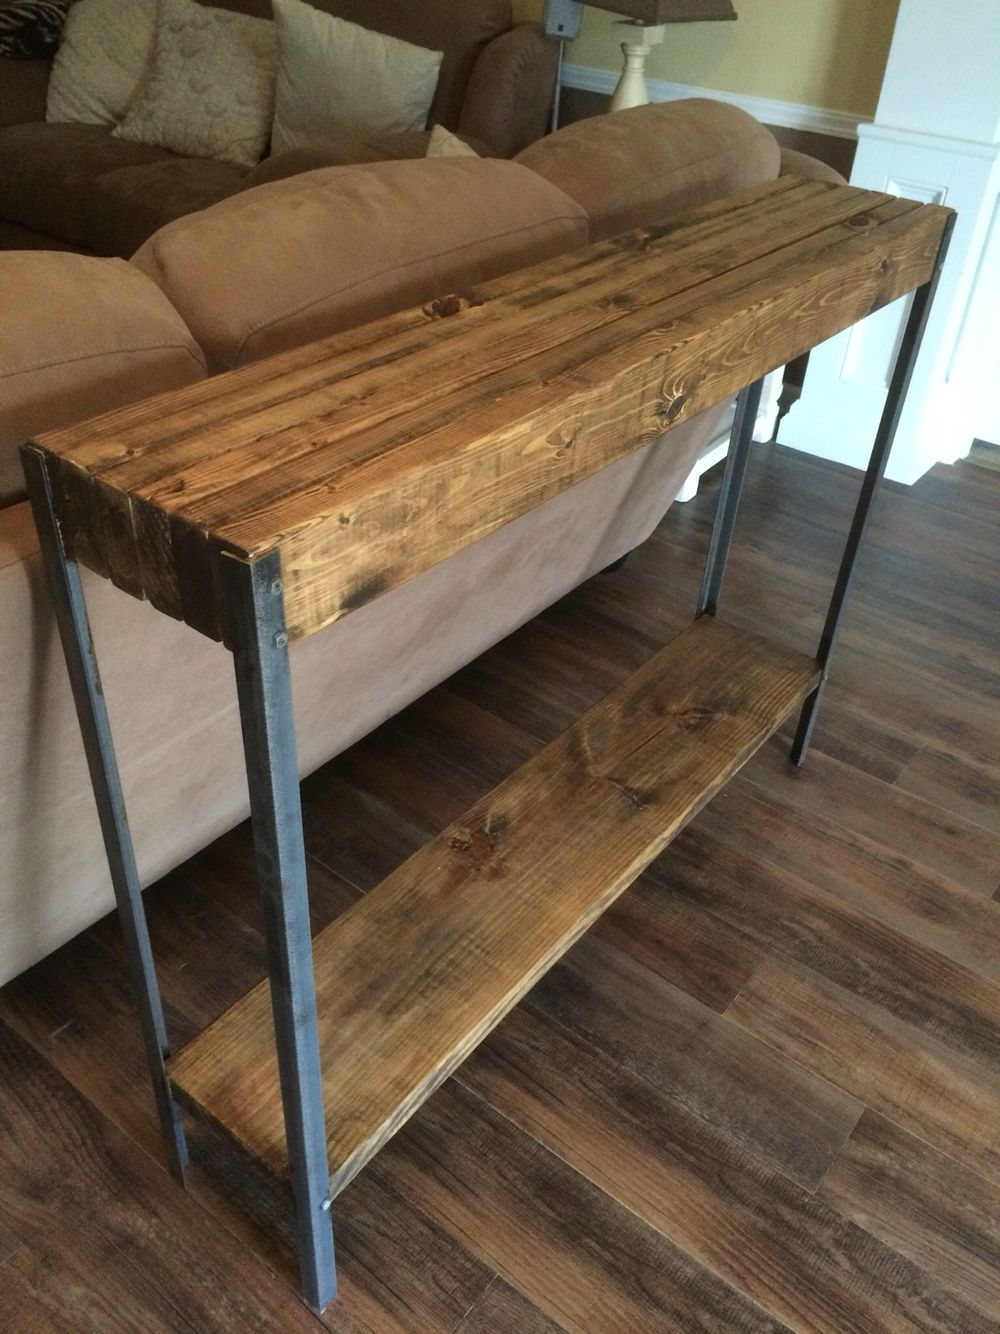 Rustic metal leg sofa table   Wayne Williams Wood Works   Pinterest     Rustic metal leg sofa table